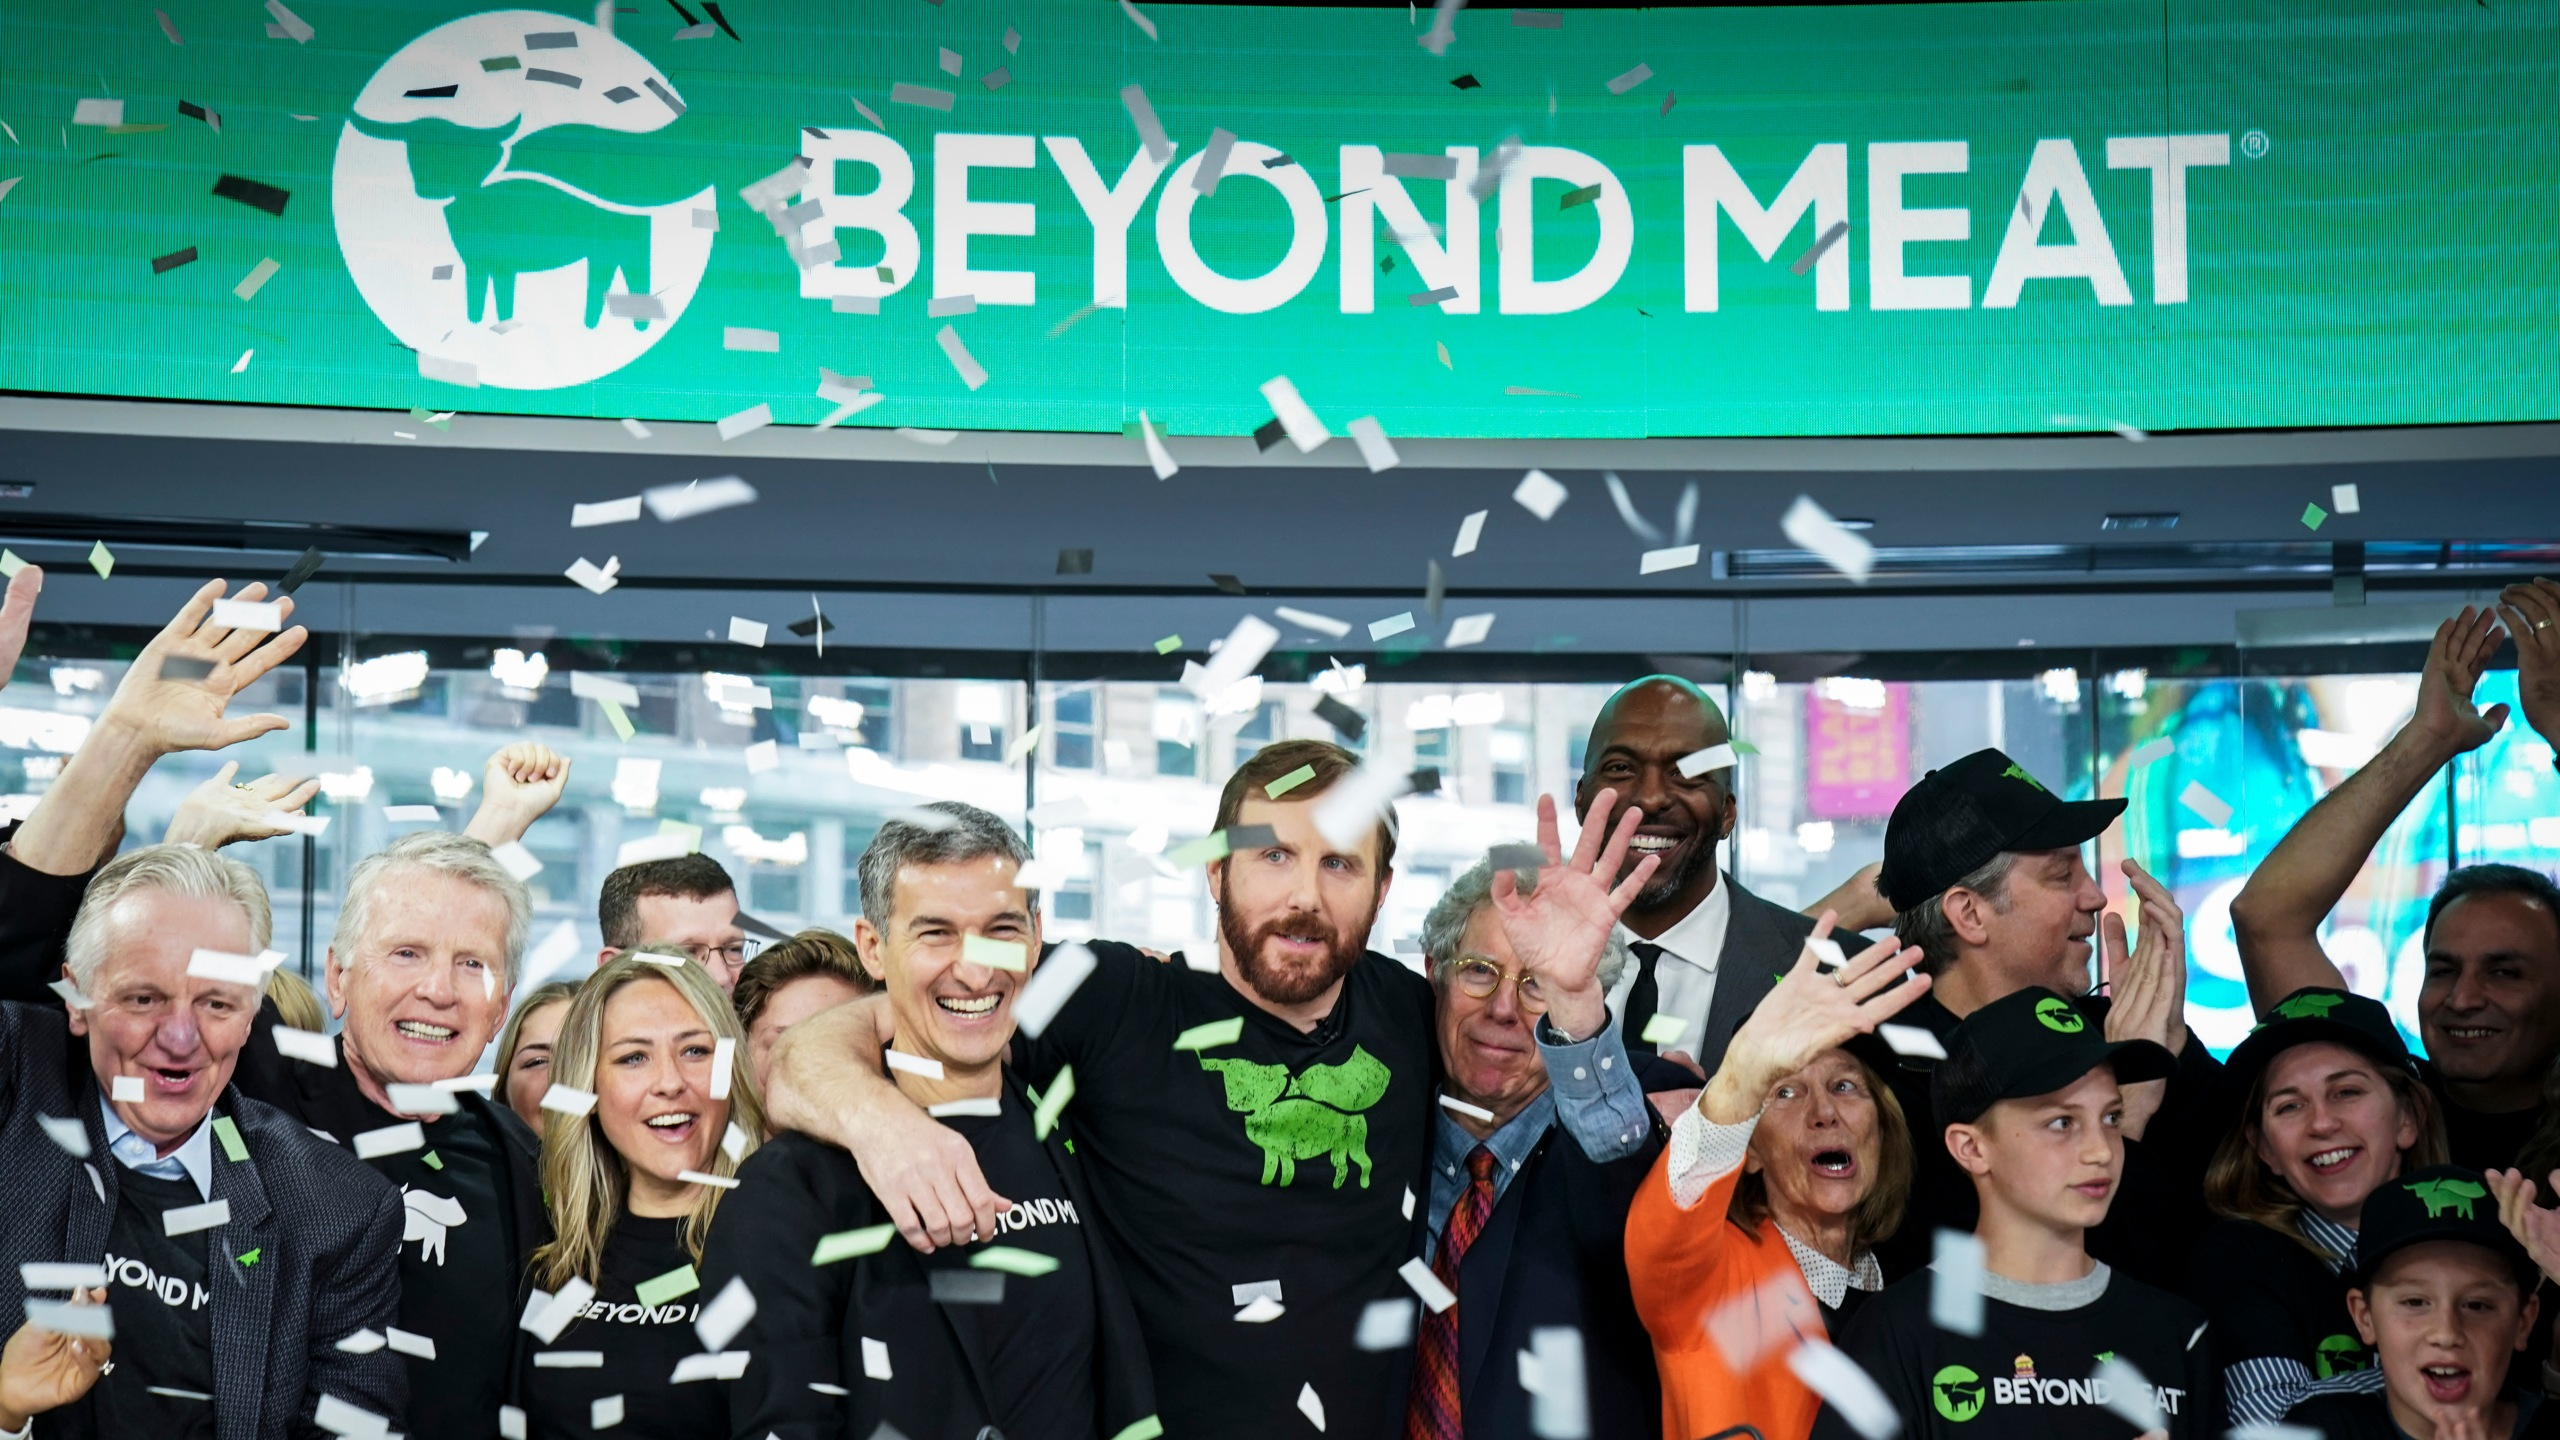 Beyond Meat CEO Ethan Brown celebrates with guests after ringing the opening bell at Nasdaq MarketSite, May 2, 2019, in New York City. (Credit: Drew Angerer/Getty Images)